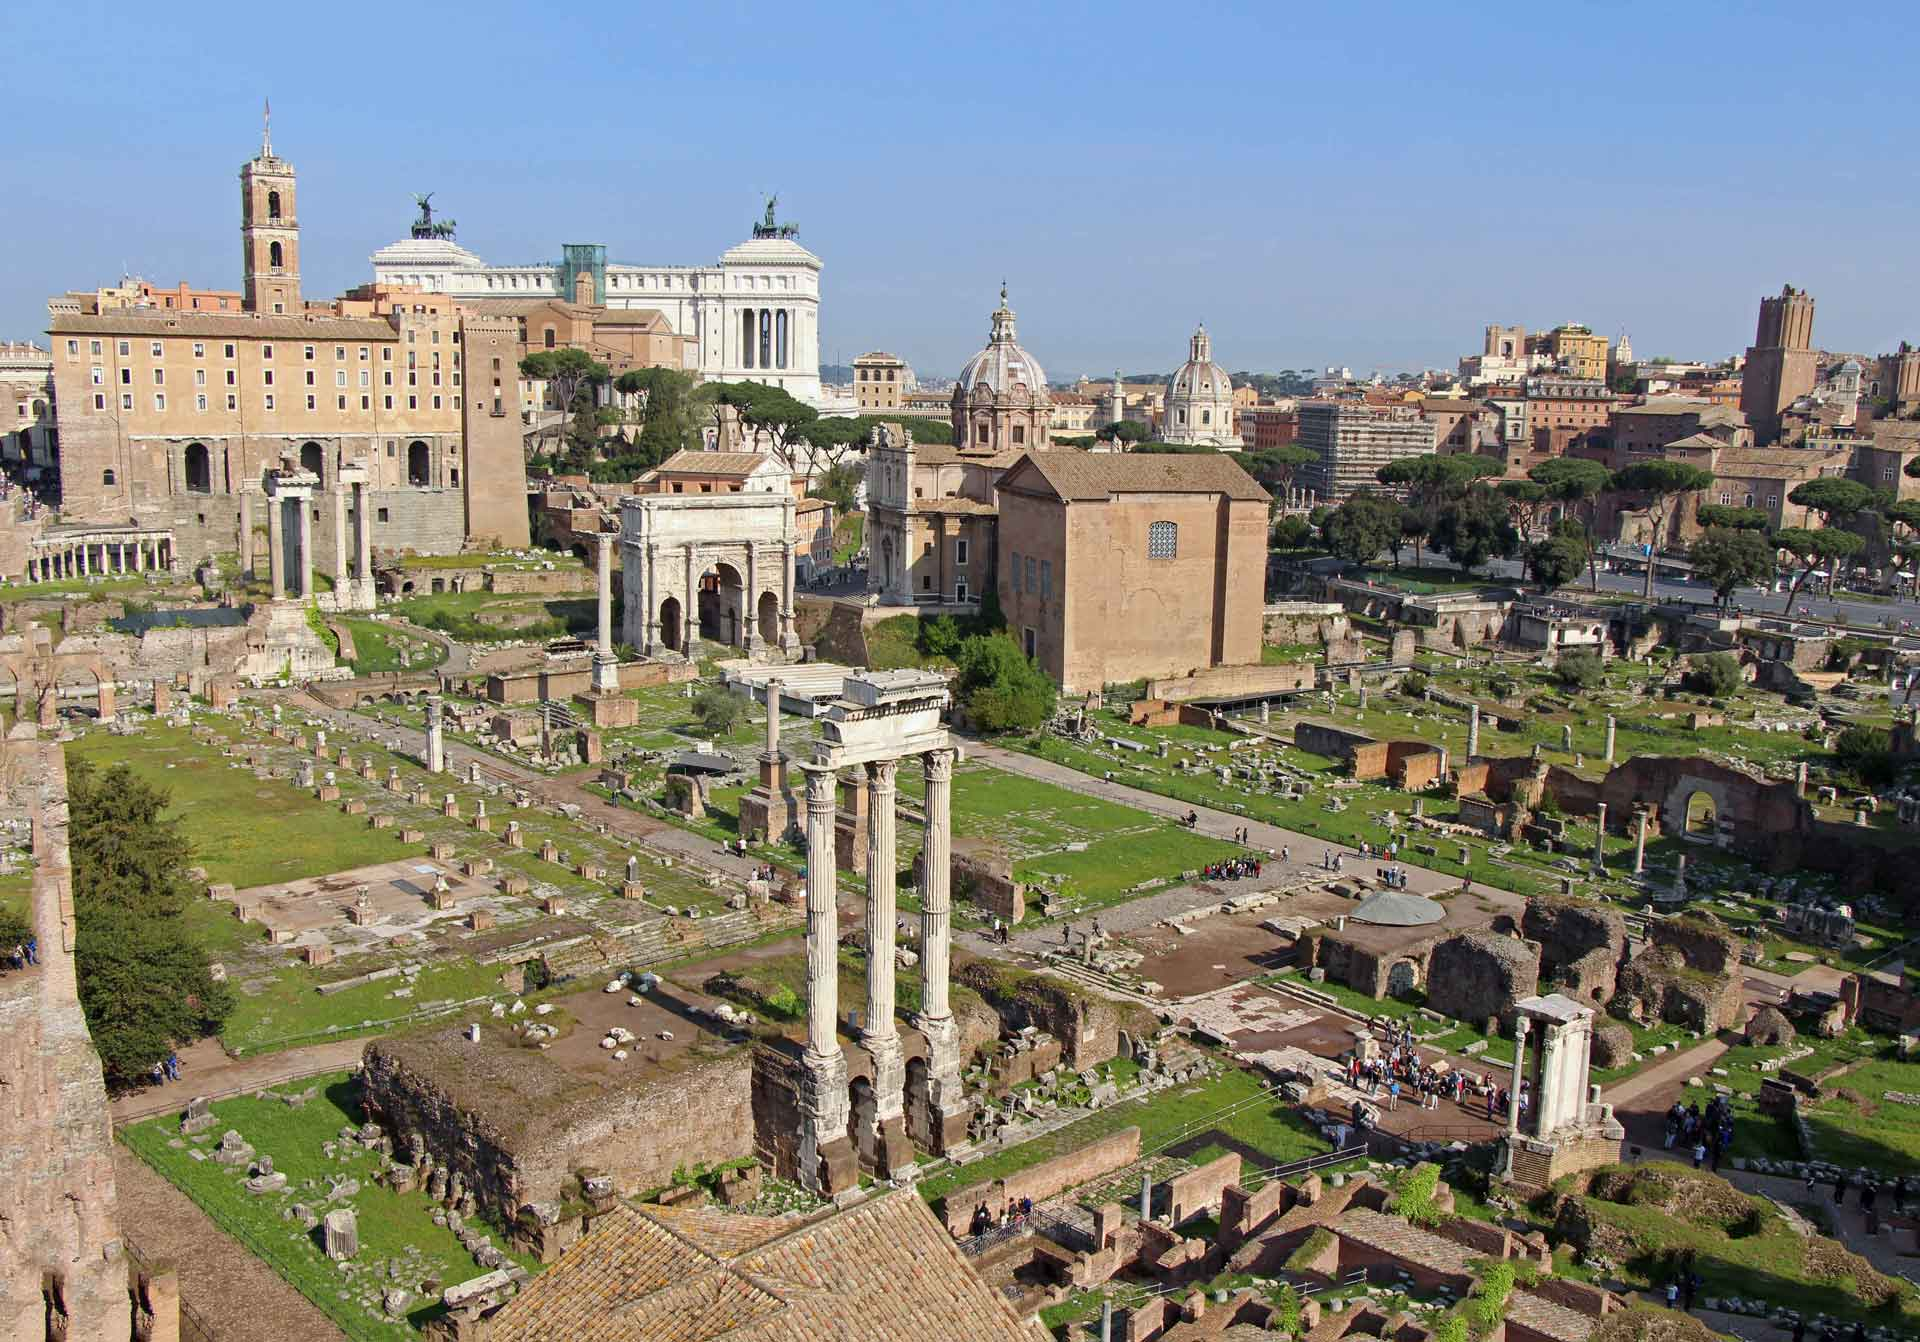 Palatine Hill and Forum in Rome Italy